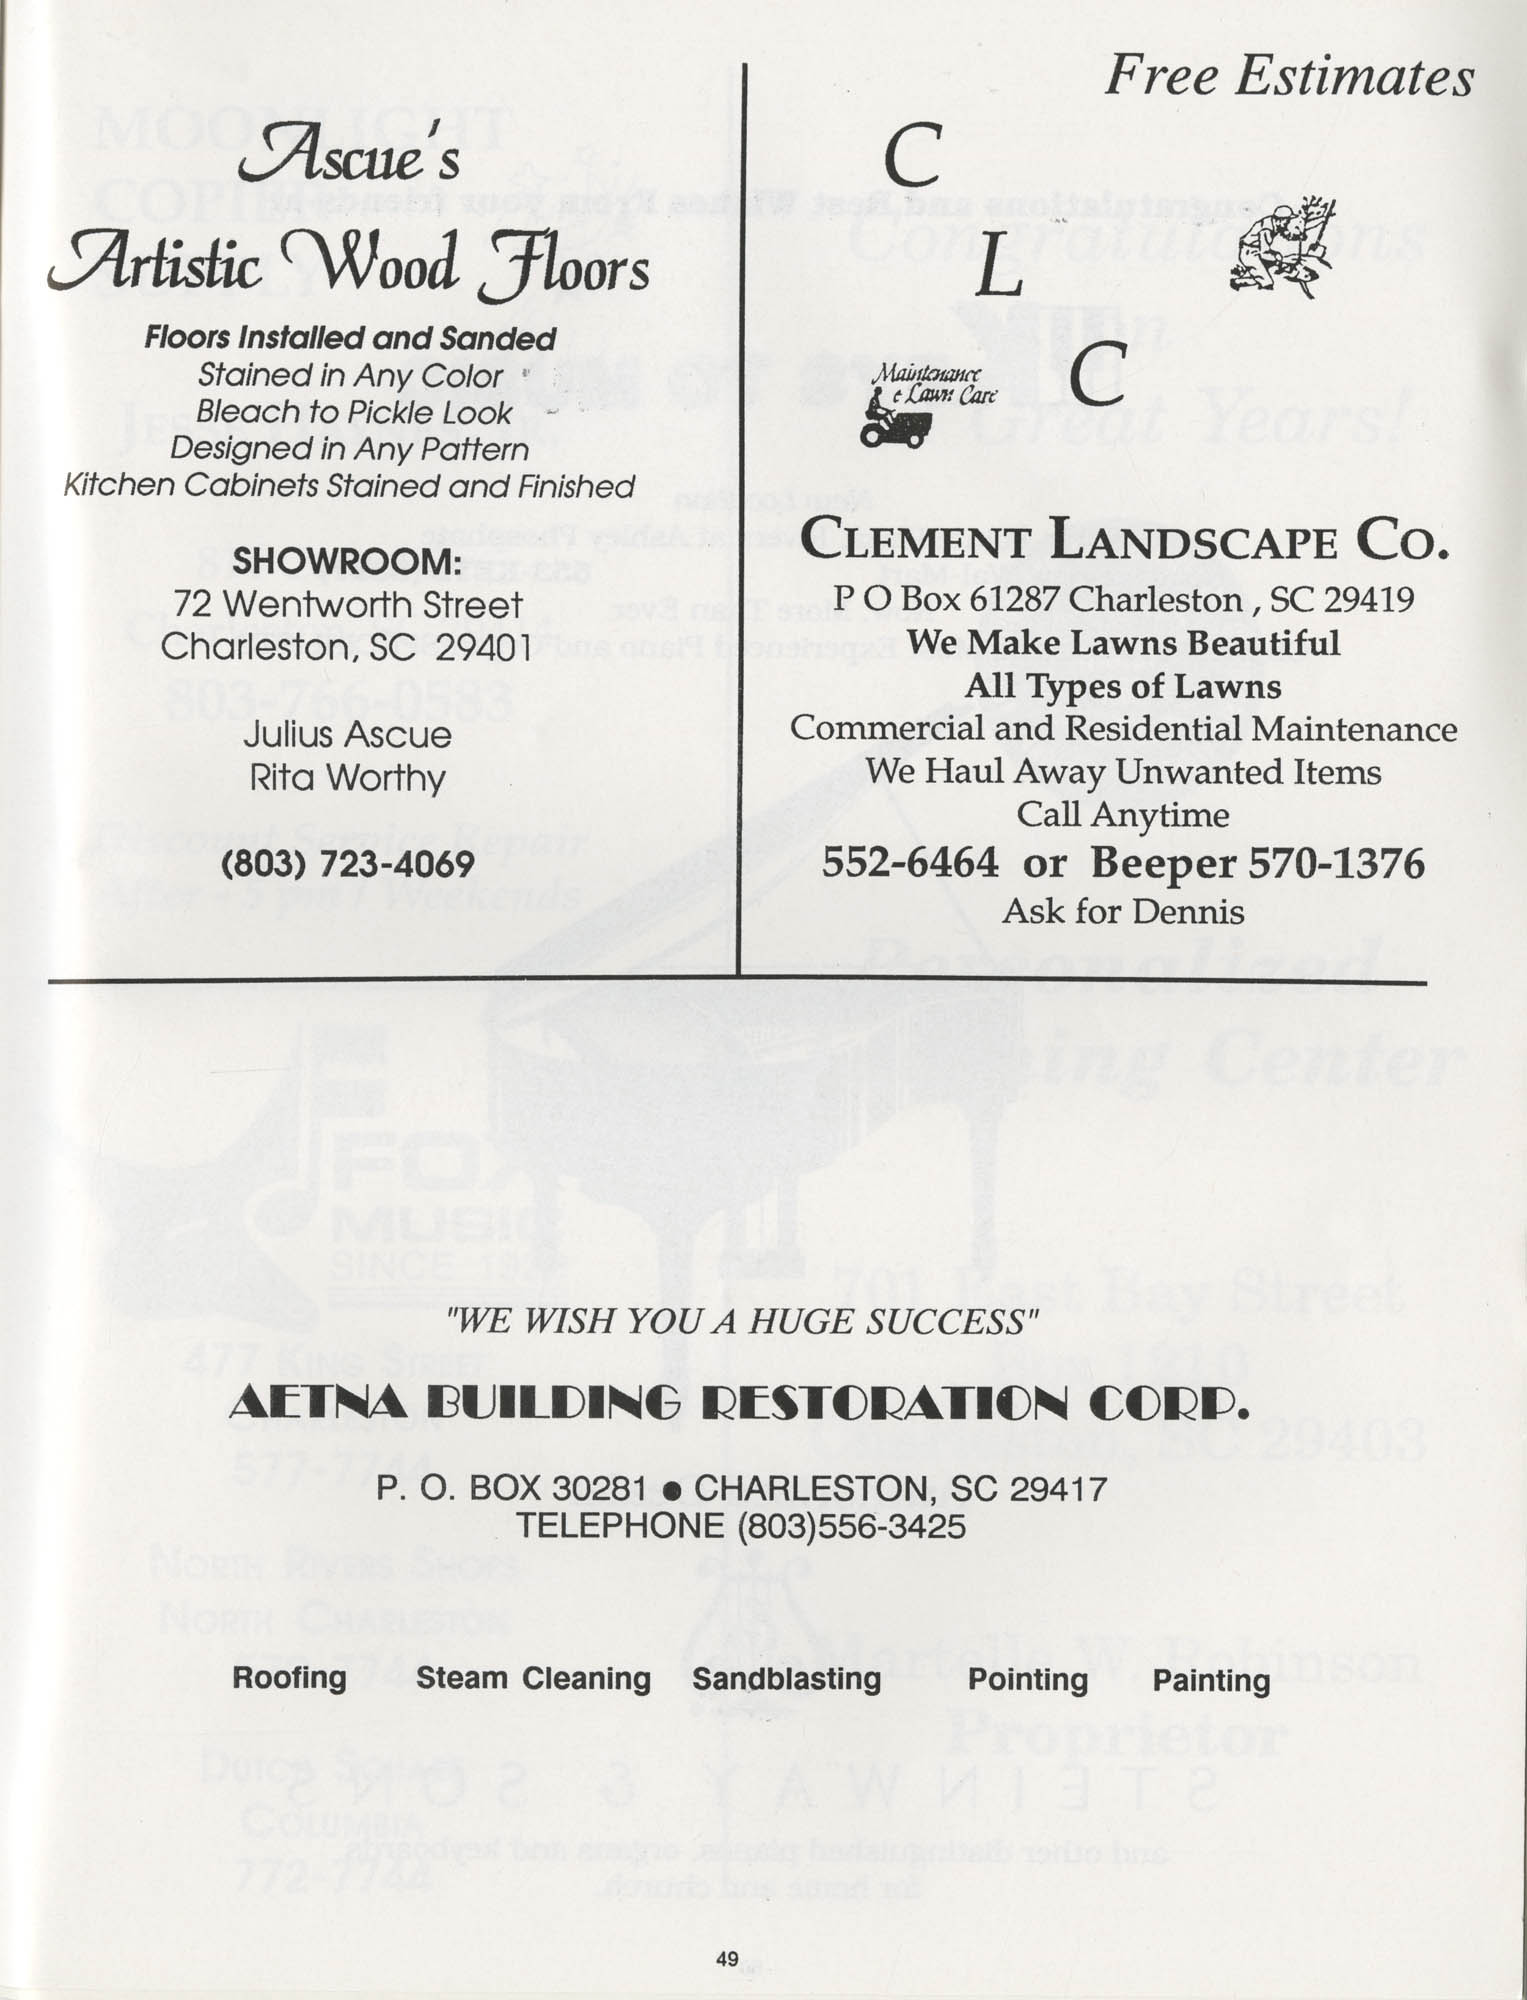 1990 NAACP Freedom Fund Magazine, Charleston Branch of the NAACP, 74th Anniversary, Page 49